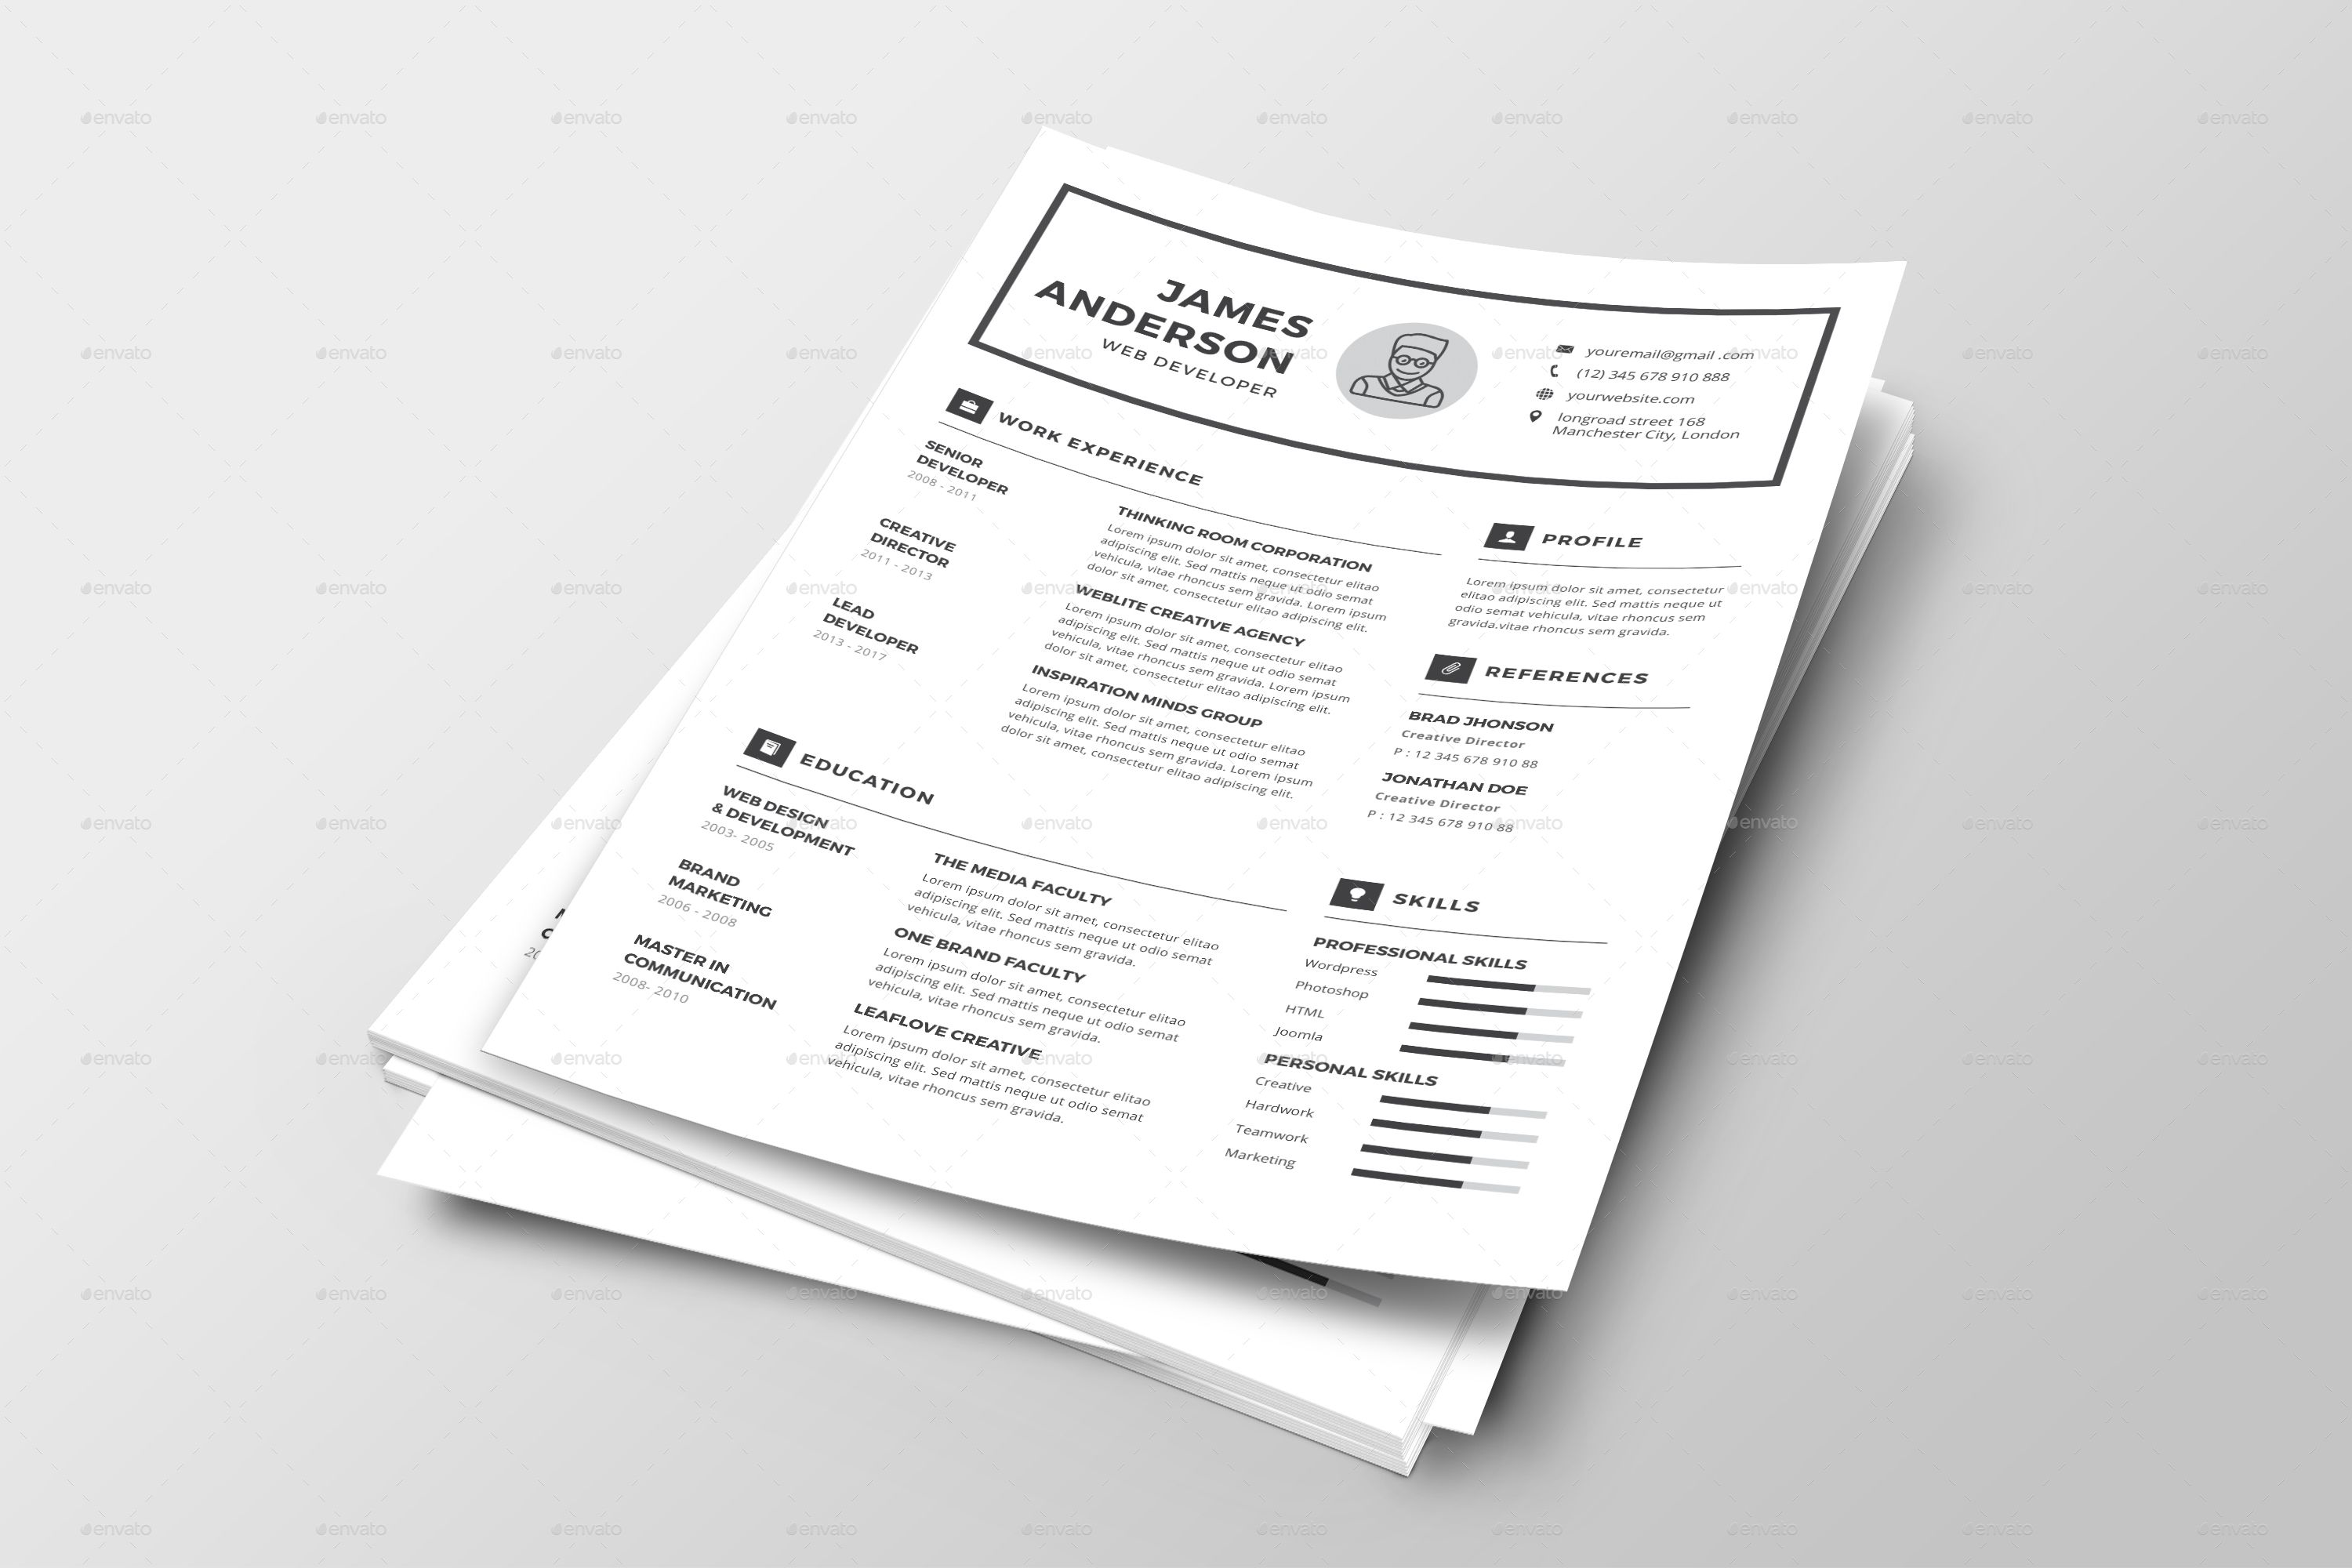 Professional Resume & Cover Letter #Ad #Resume, #ad ...